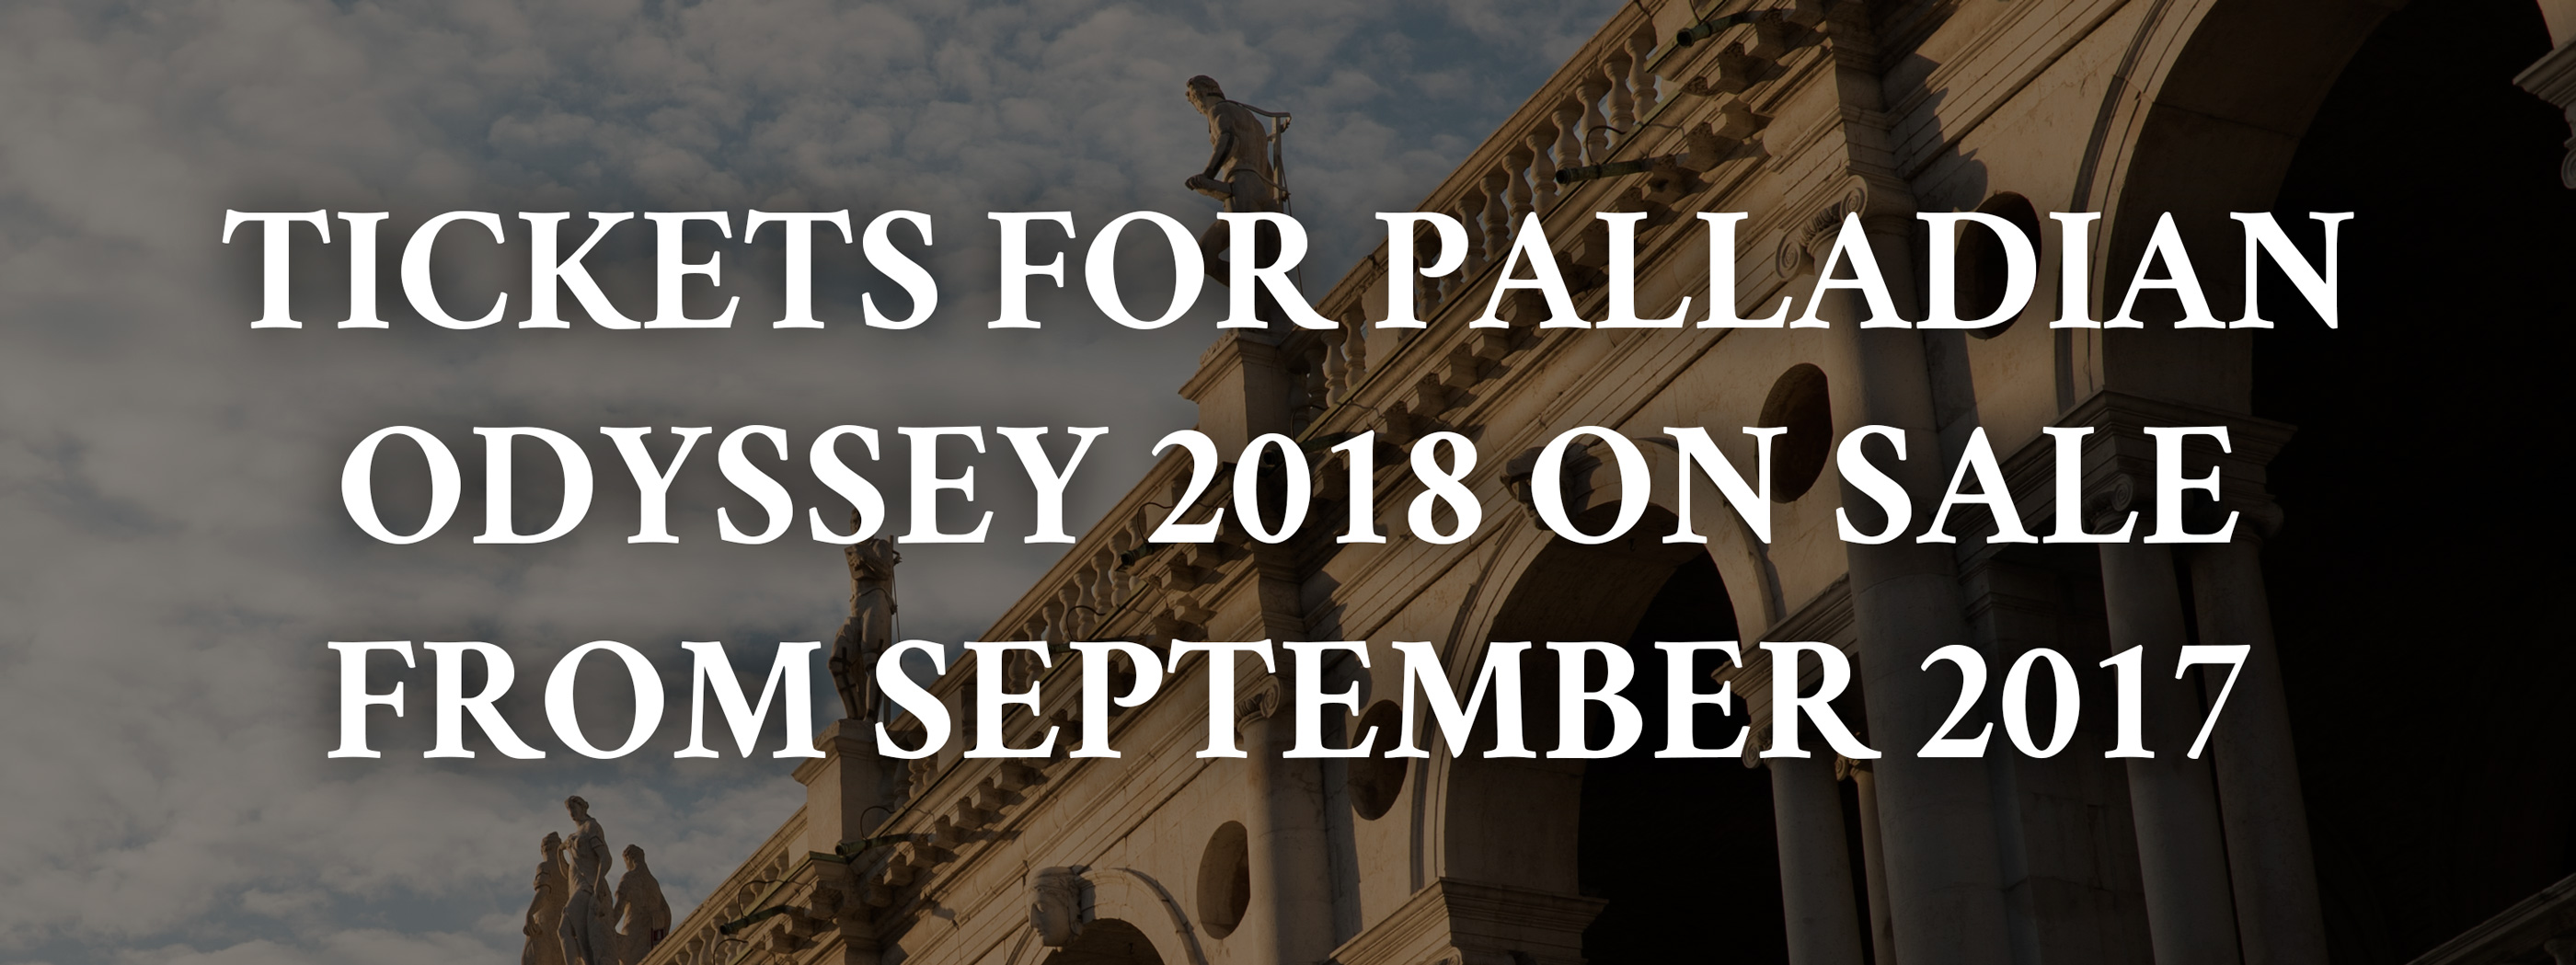 theTickers for Palladian Odyssey 2048 on sale september 2017